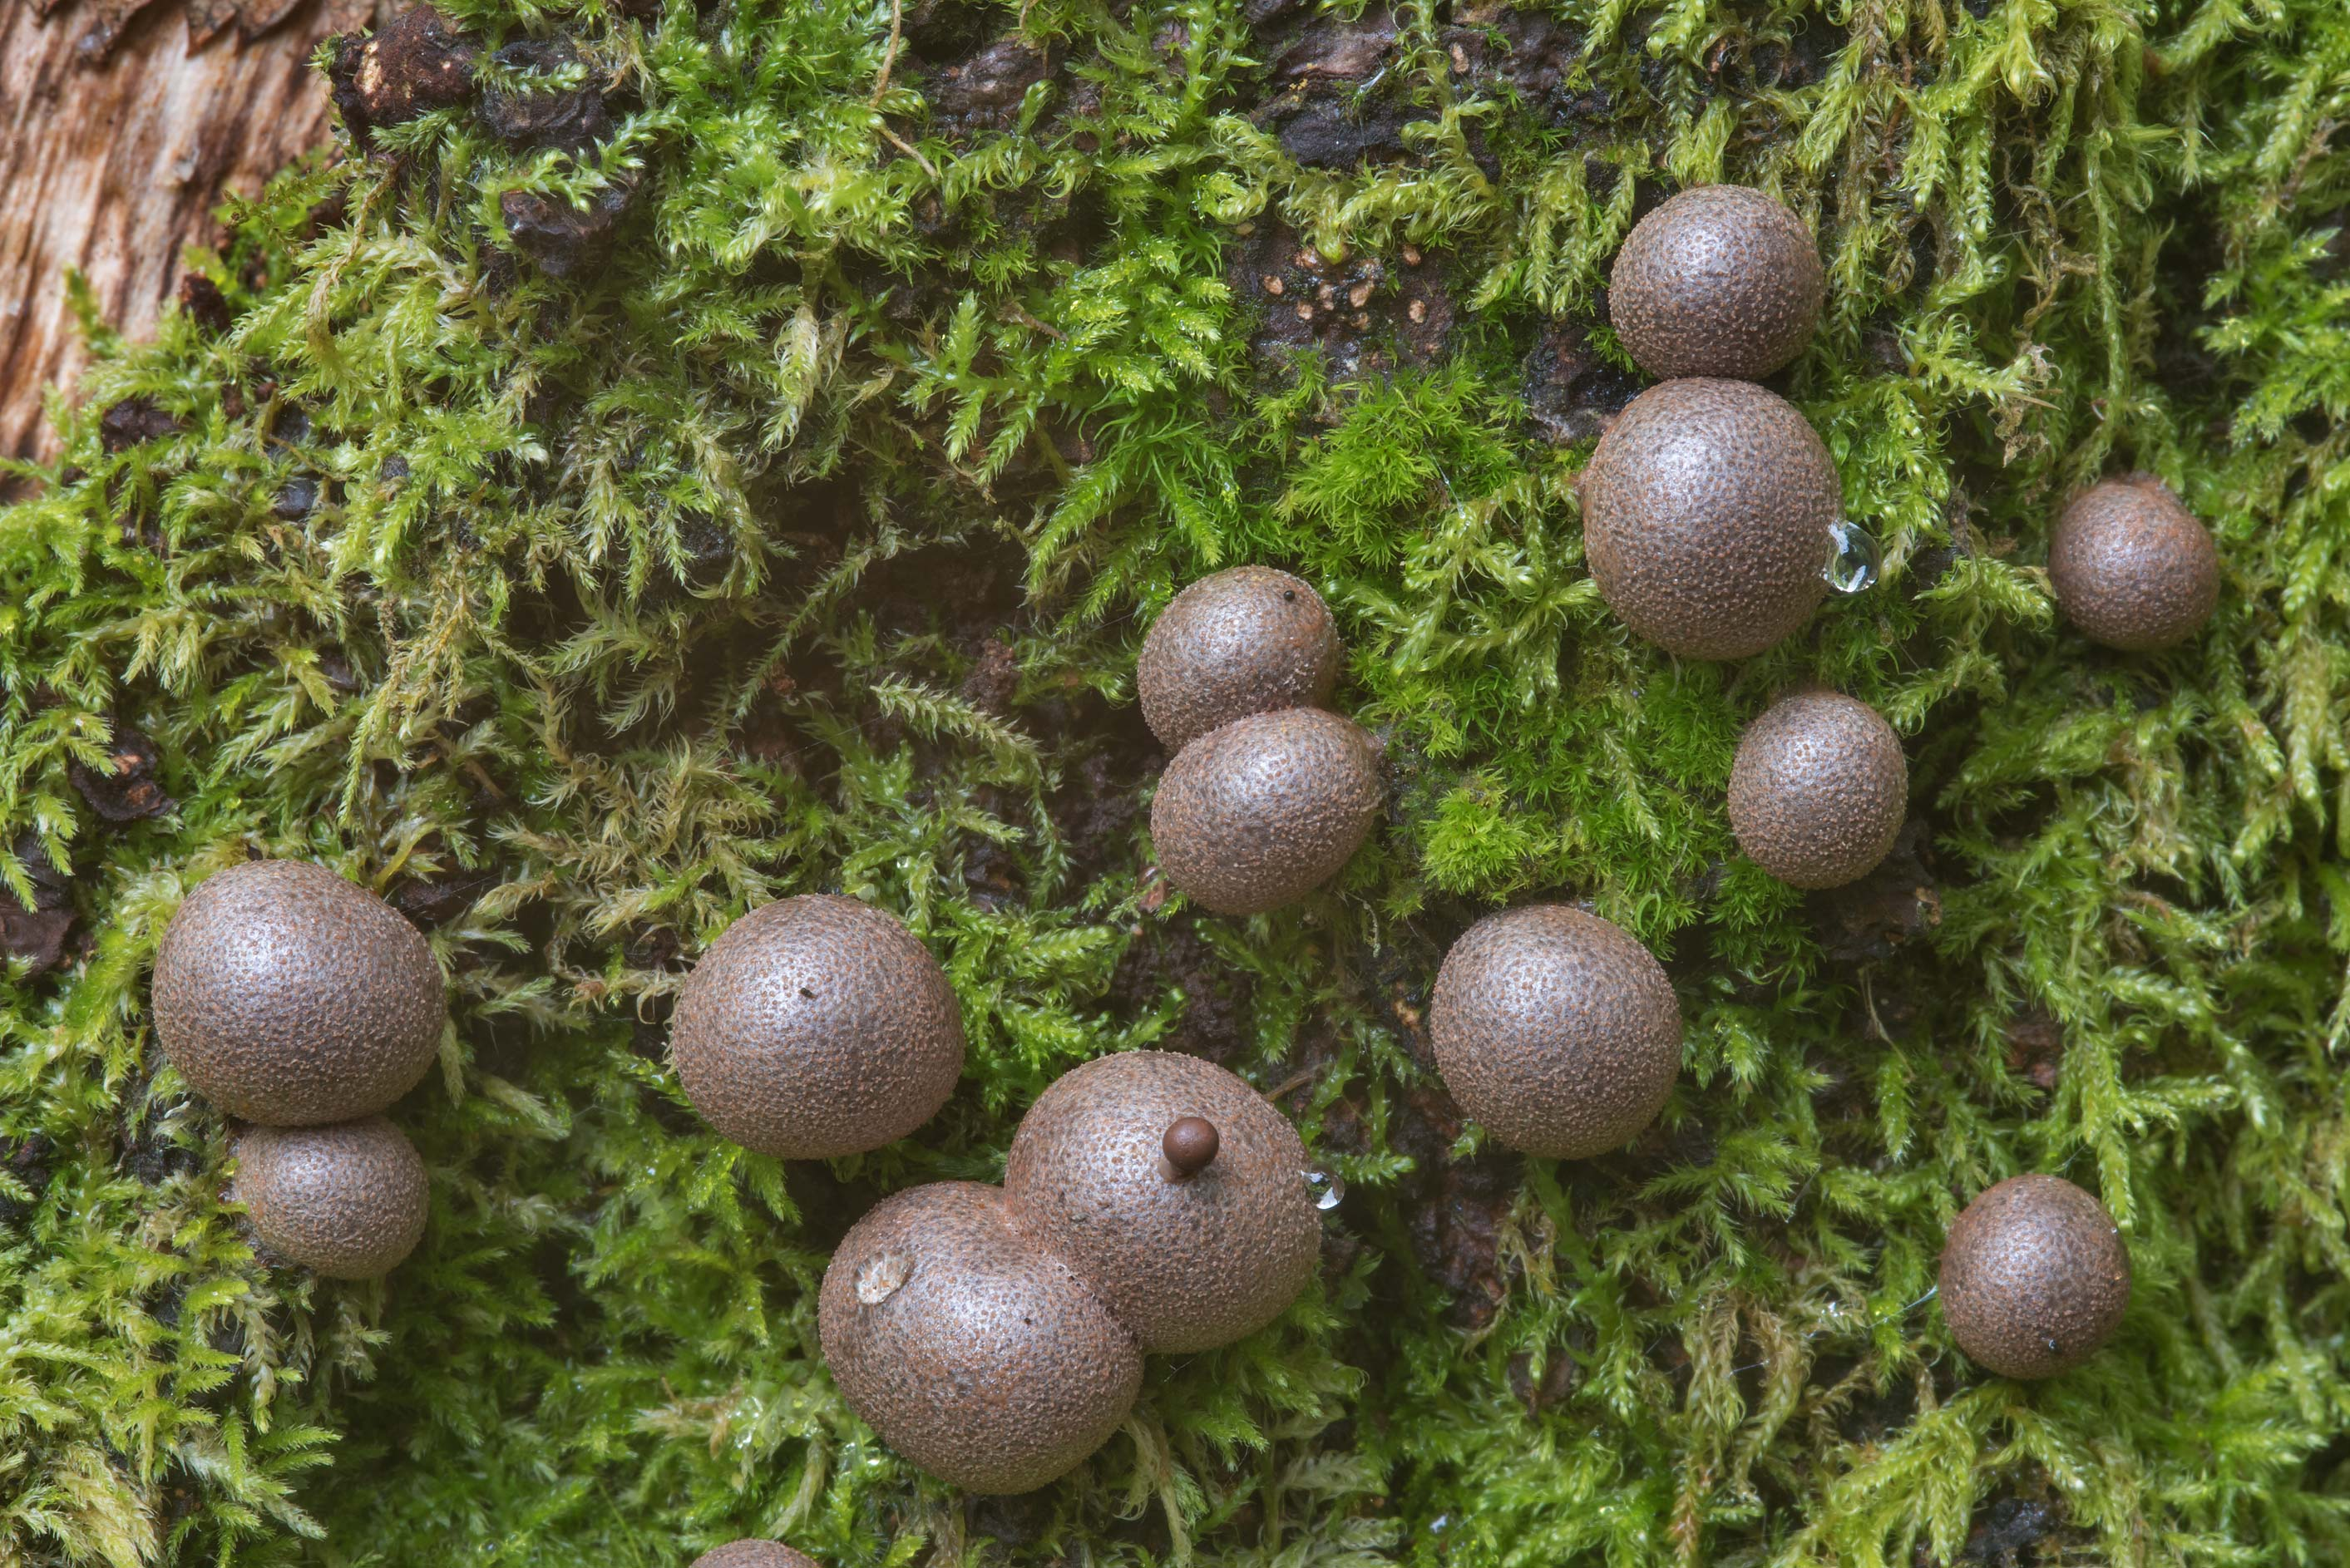 Mature wolf's milk slime mold (Lycogala...west from St.Petersburg. Russia